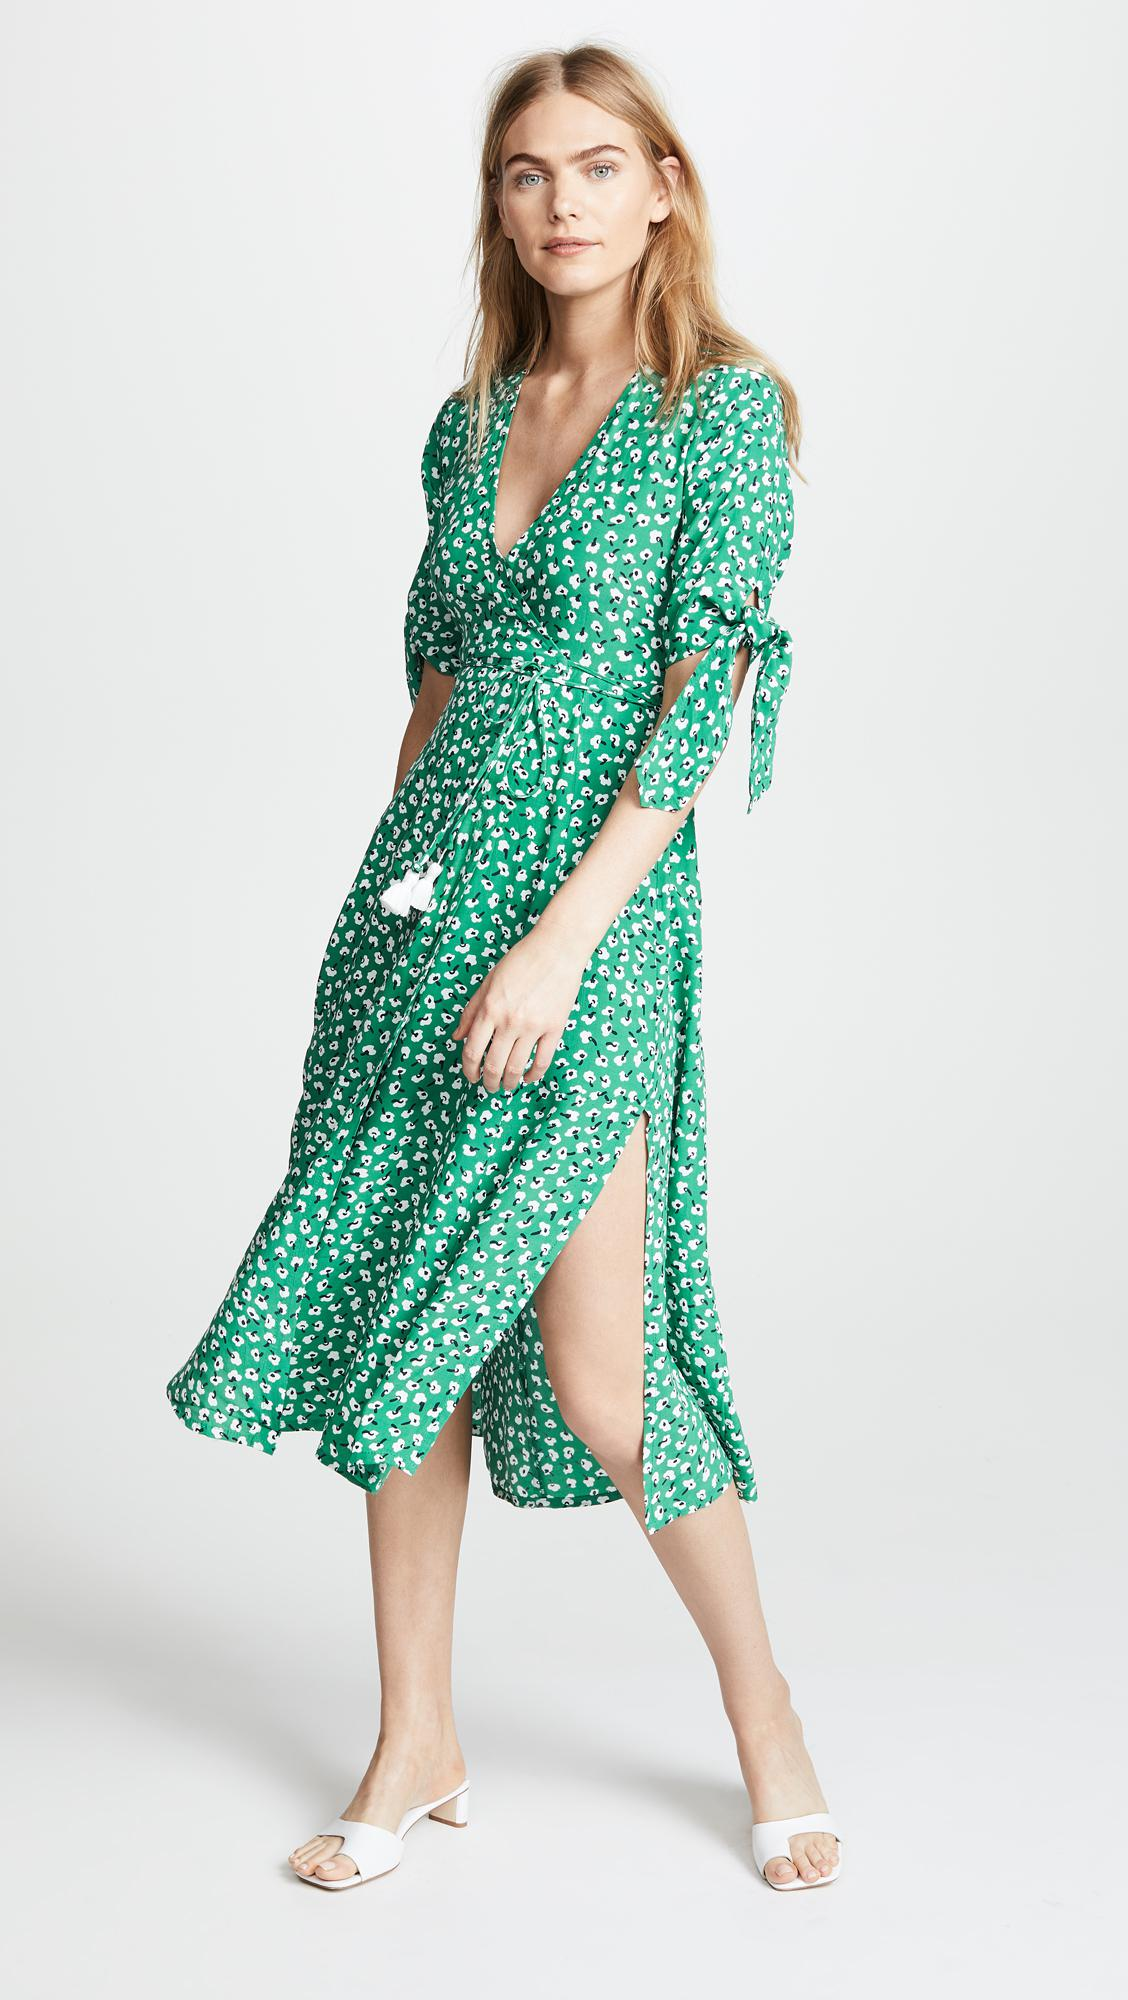 afec6d460ea0 Lyst - Faithfull The Brand Melodie Midi Dress in Green